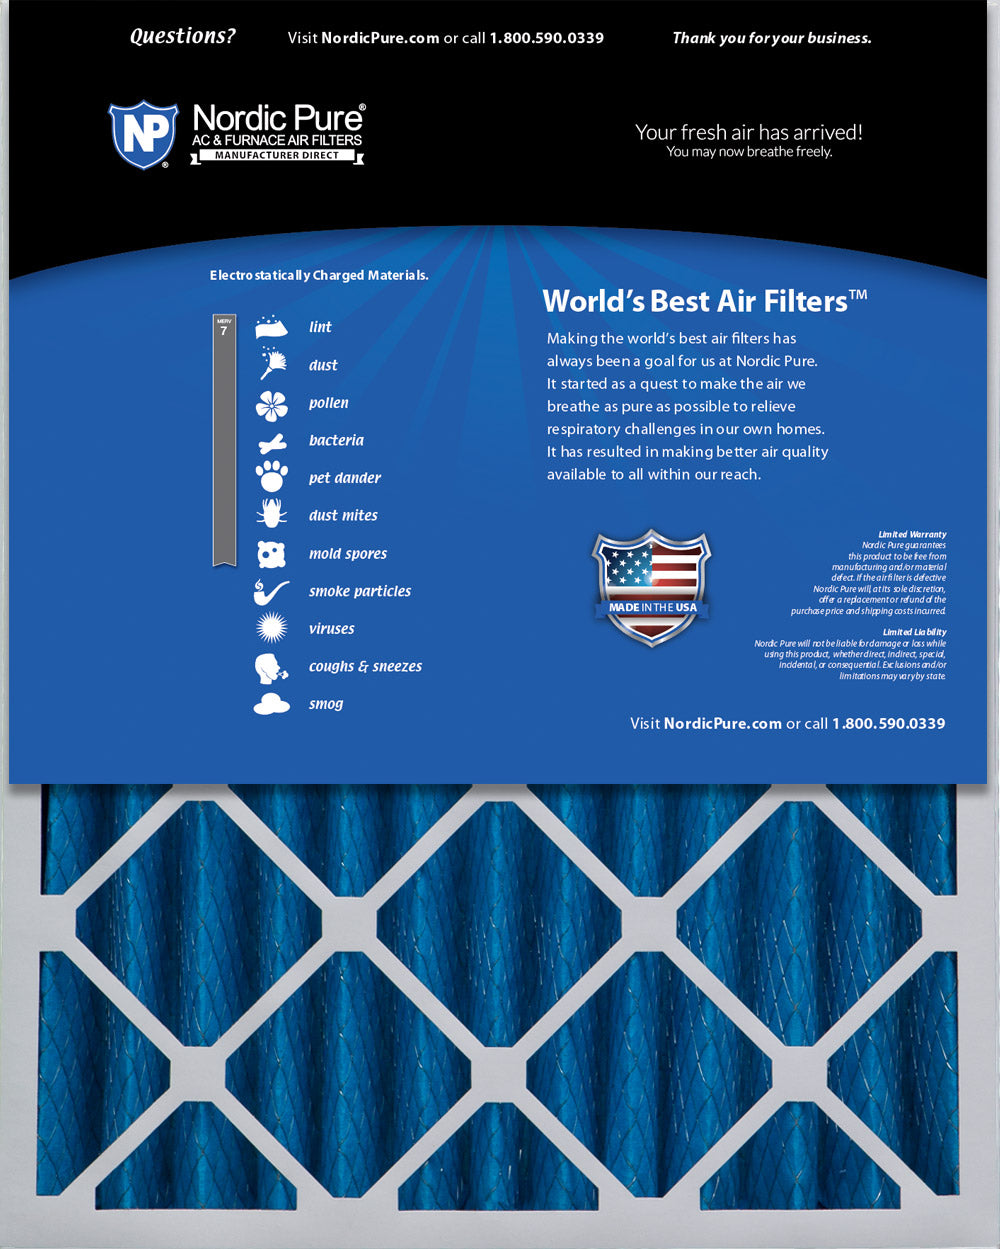 3-5//8 Actual Depth Nordic Pure 20x24x4 MERV 10 Pleated Plus Carbon AC Furnace Air Filters 1 Pack 20 x 24 x 4 1 Pack 20 x 24 x 4